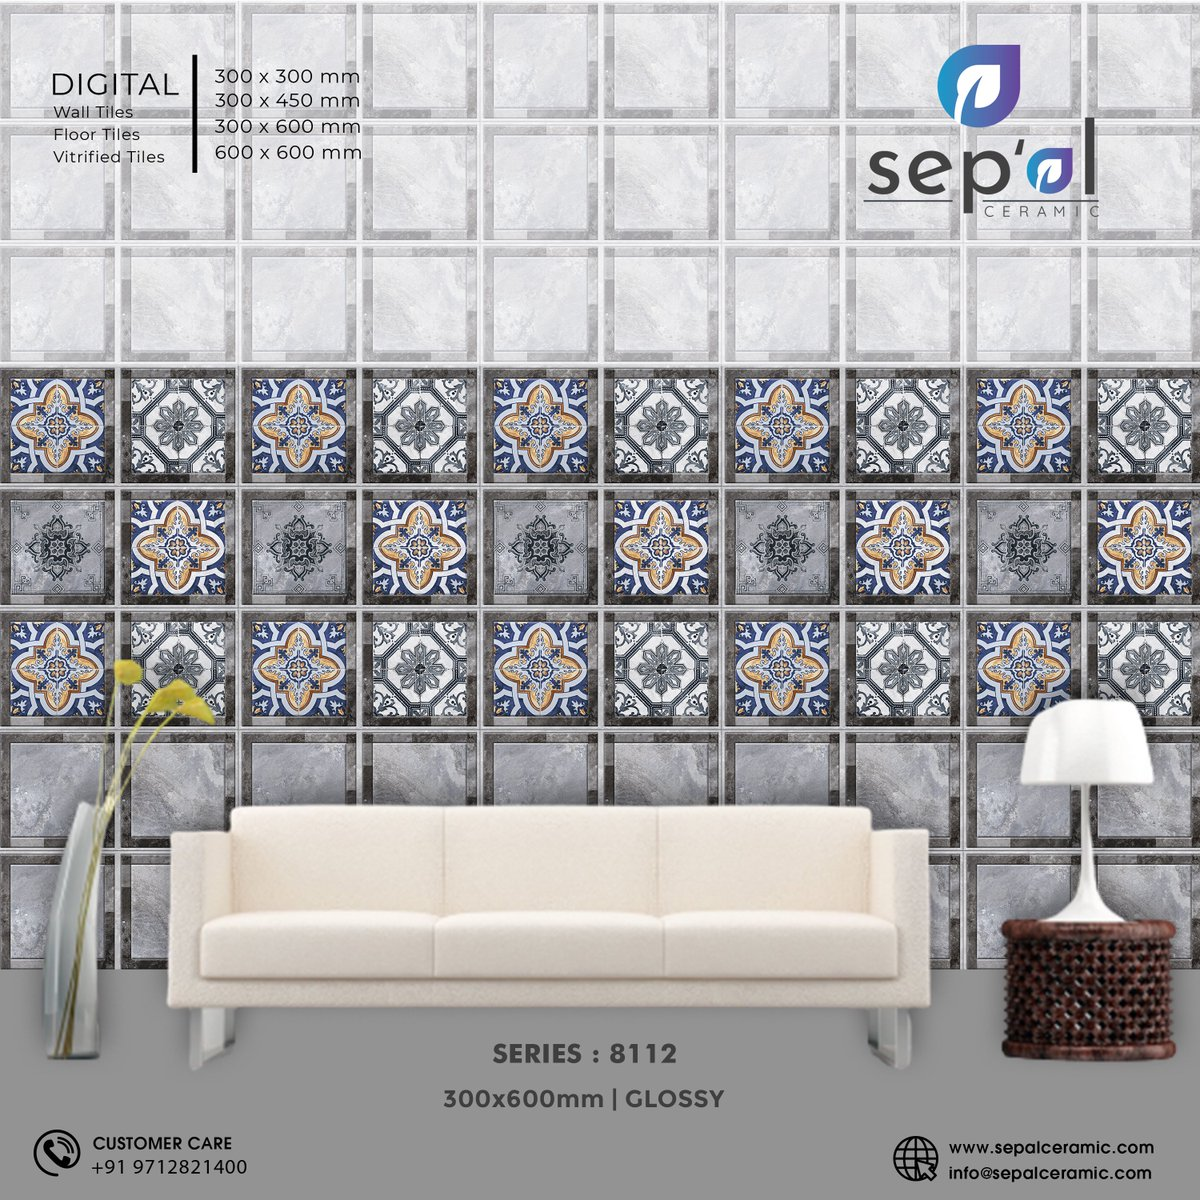 Series no 8112 | 300x600mm | Glossy #sepal #Sepalceramic #vitrified #manufacturing #tiles #ceramics #matt #glossy #Exporter #walldecor #Digitalwalltiles #TilesOfIndia #manufacturer #InteriorDecor #digitaltiles #sepalDesigns #Moderation #morbipic.twitter.com/MSEqn8u3wK